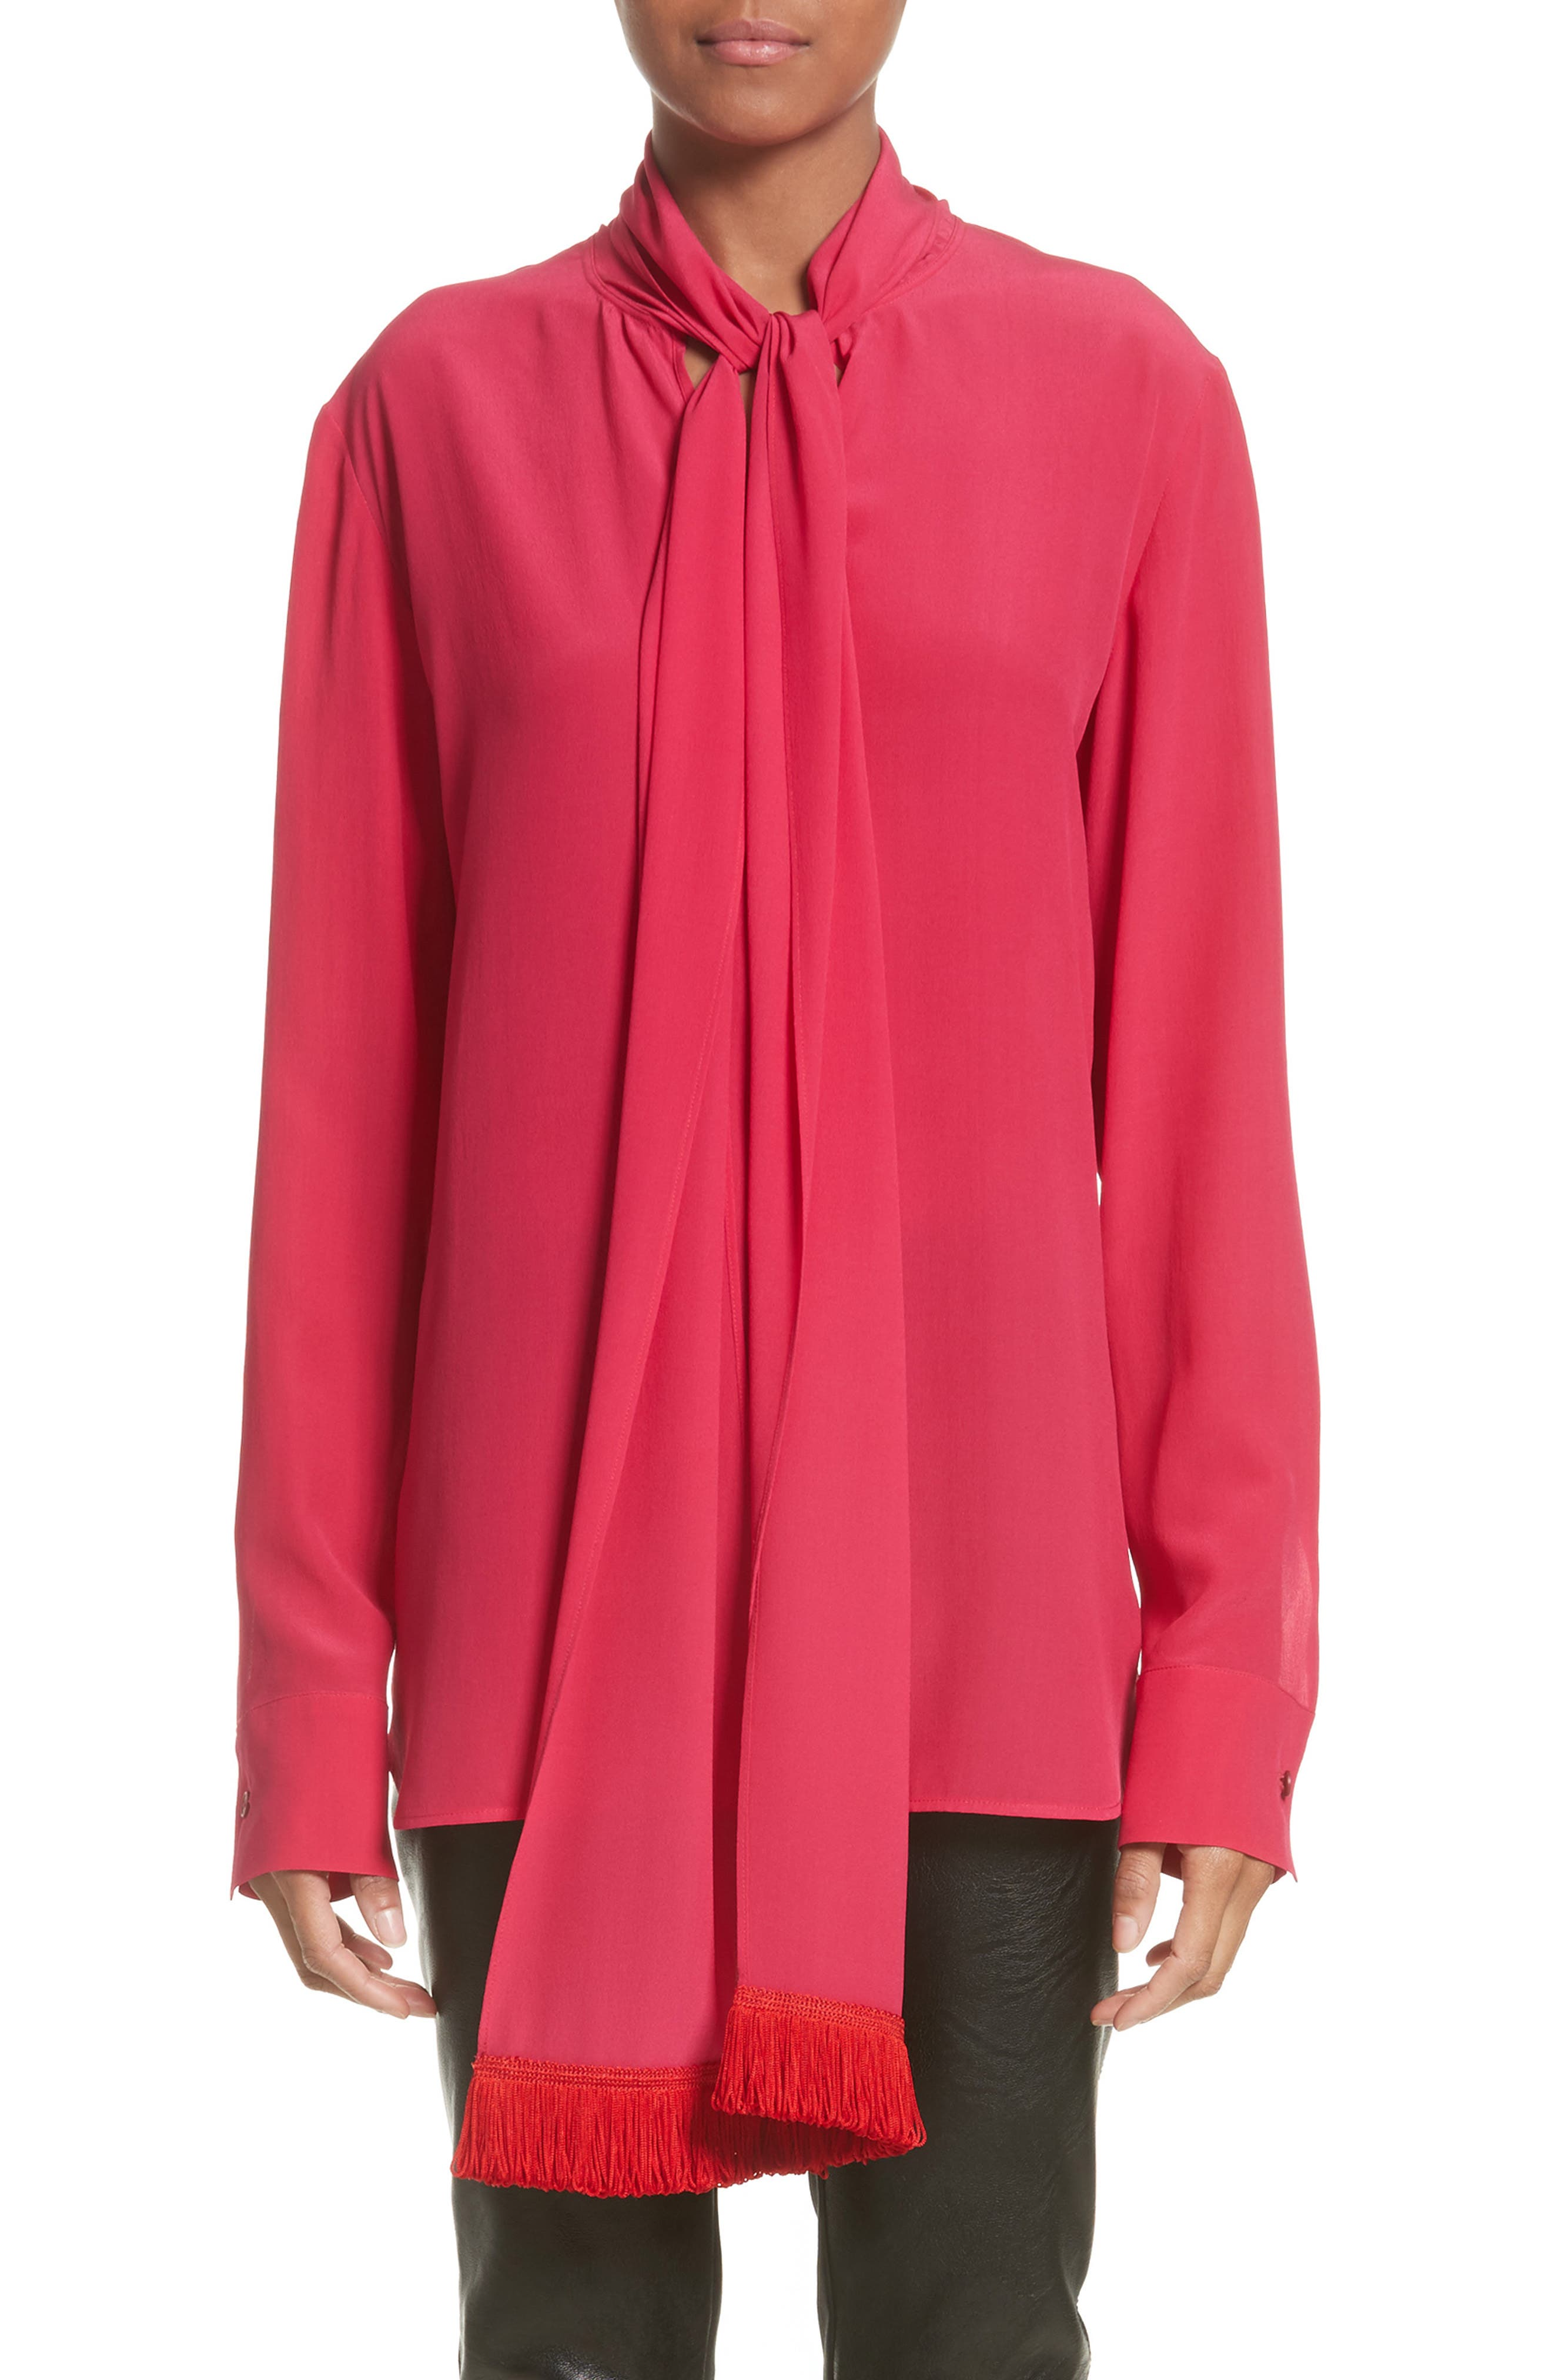 Stella McCartney Fringe Trim Tie Blouse